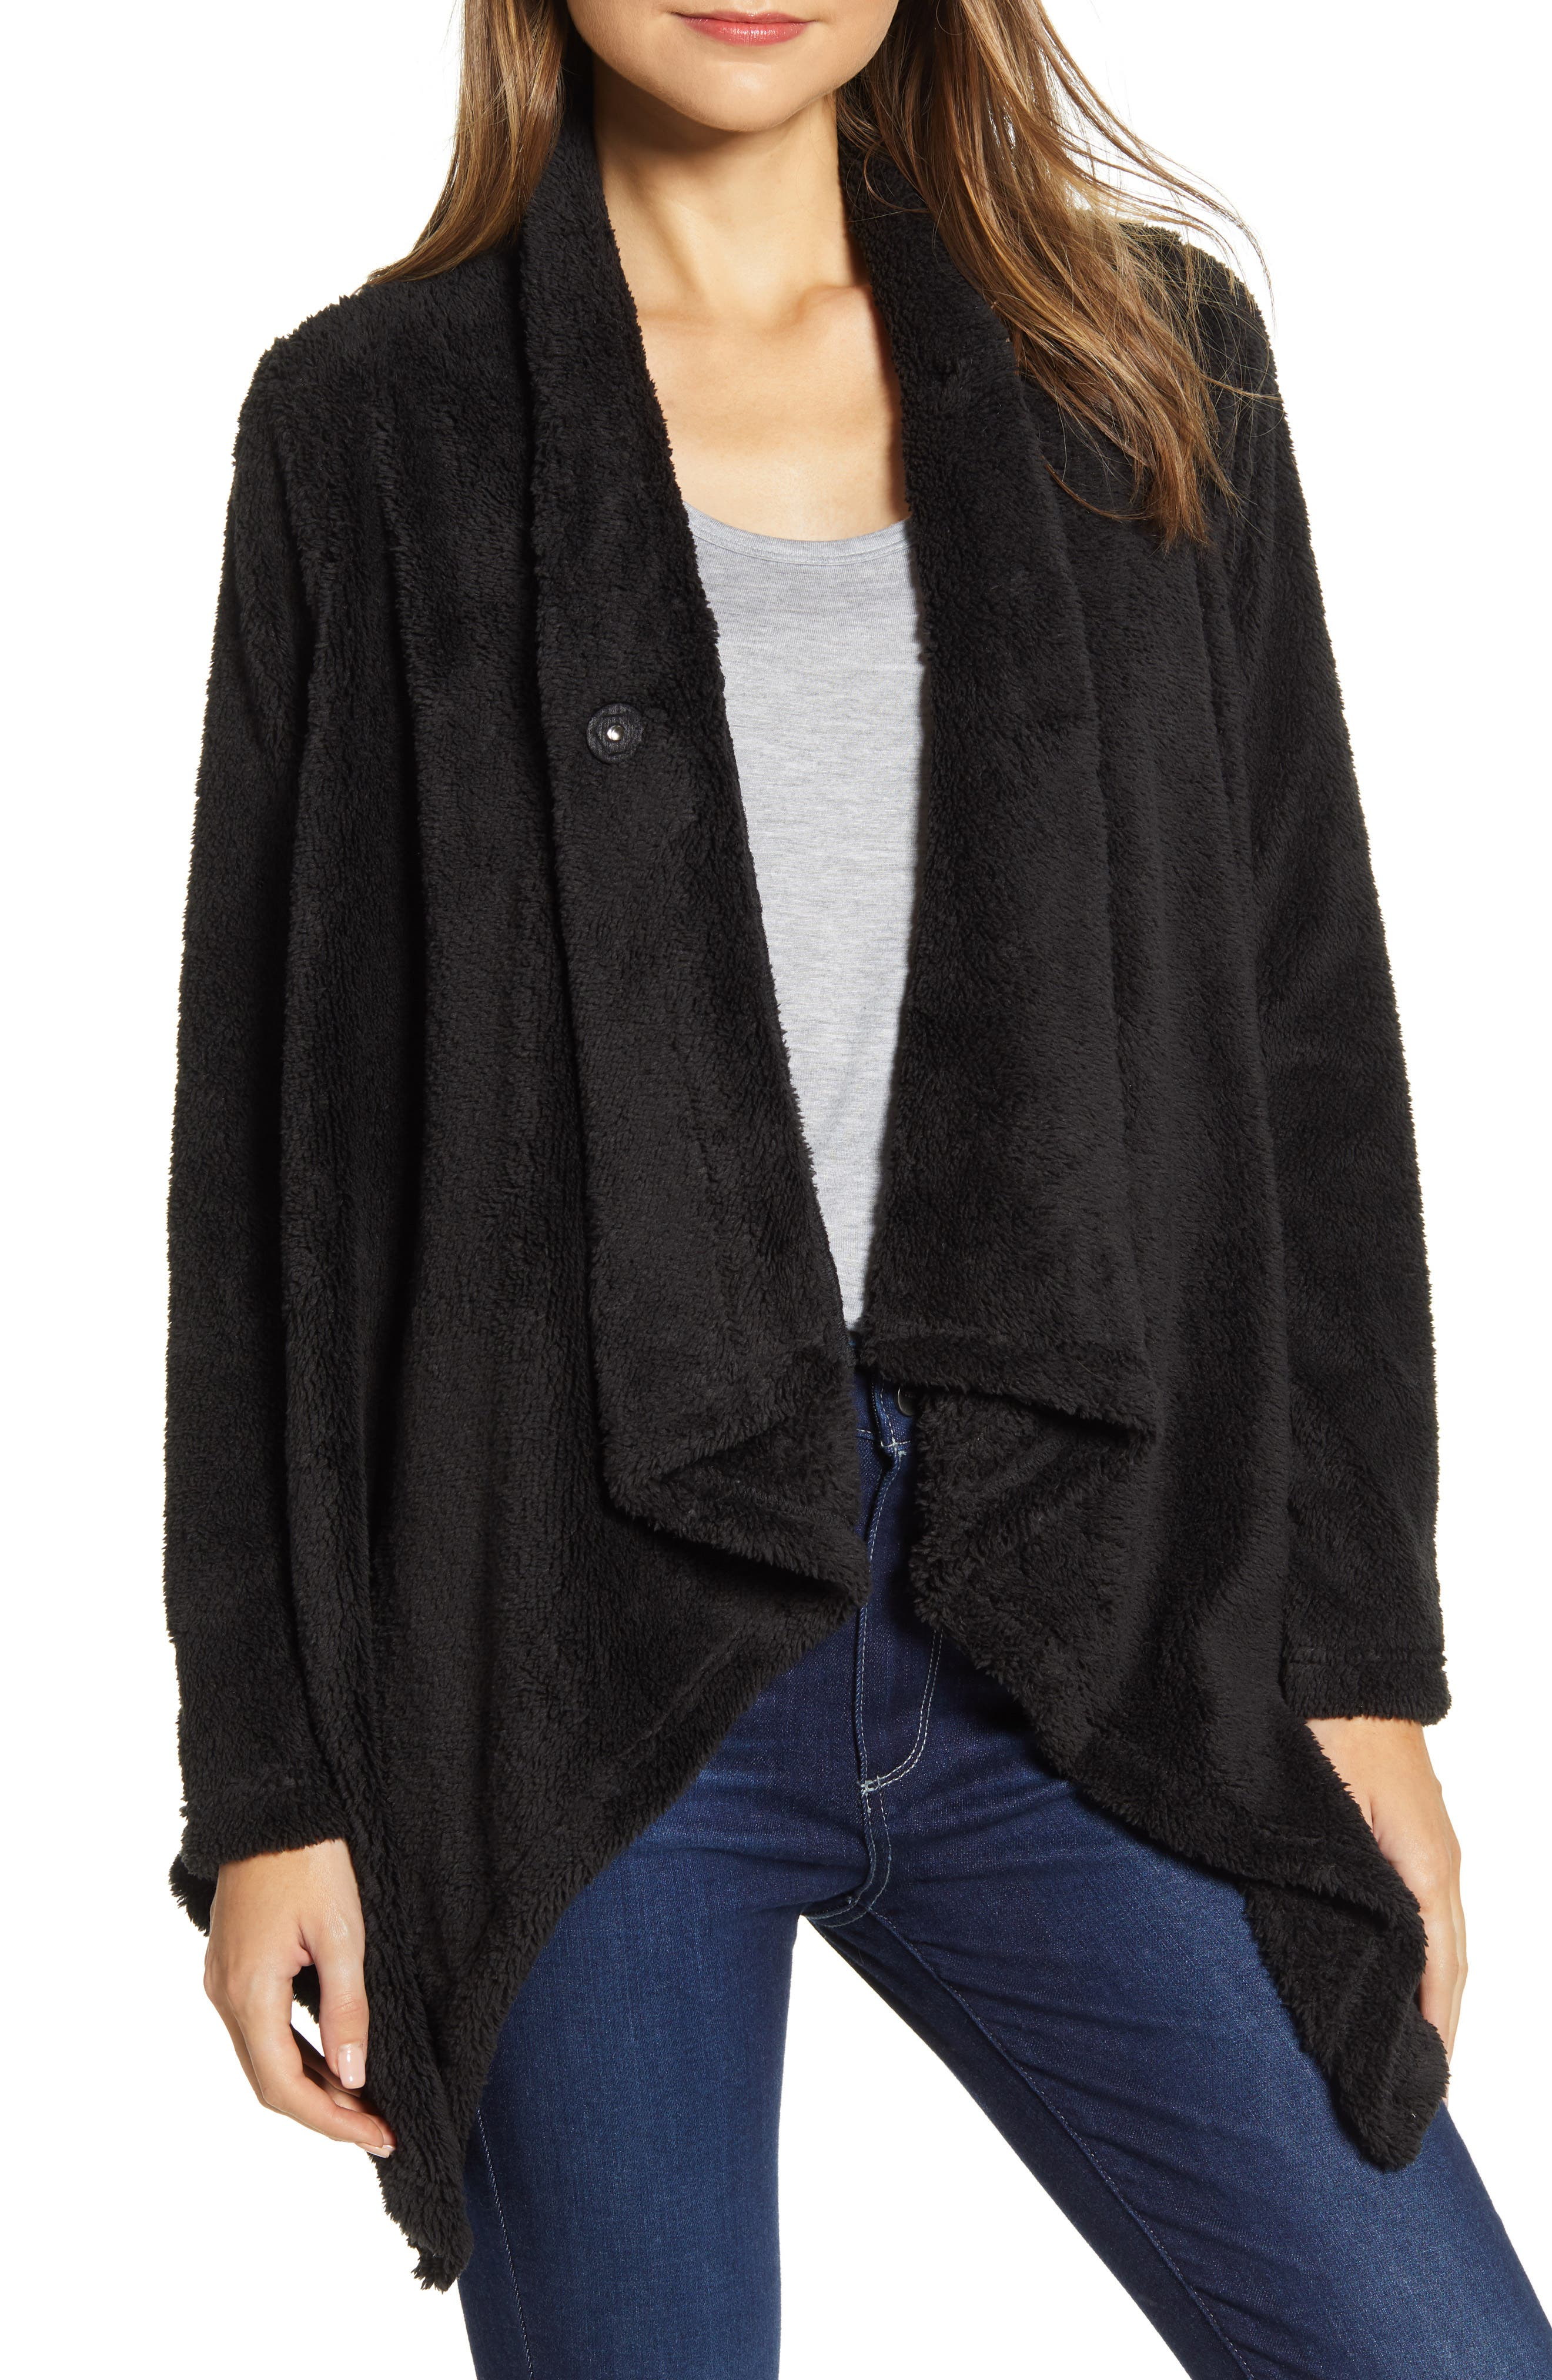 Another reason to celebrate the onset of sweater season, this favorite cardigan is back in a super-plush faux-fur. Wear it draped open or wrap and secure it with a single snap below the neck. Style Name: Bobeau Drape Front Faux Fur Cardigan. Style Number: 5916023. Available in stores.